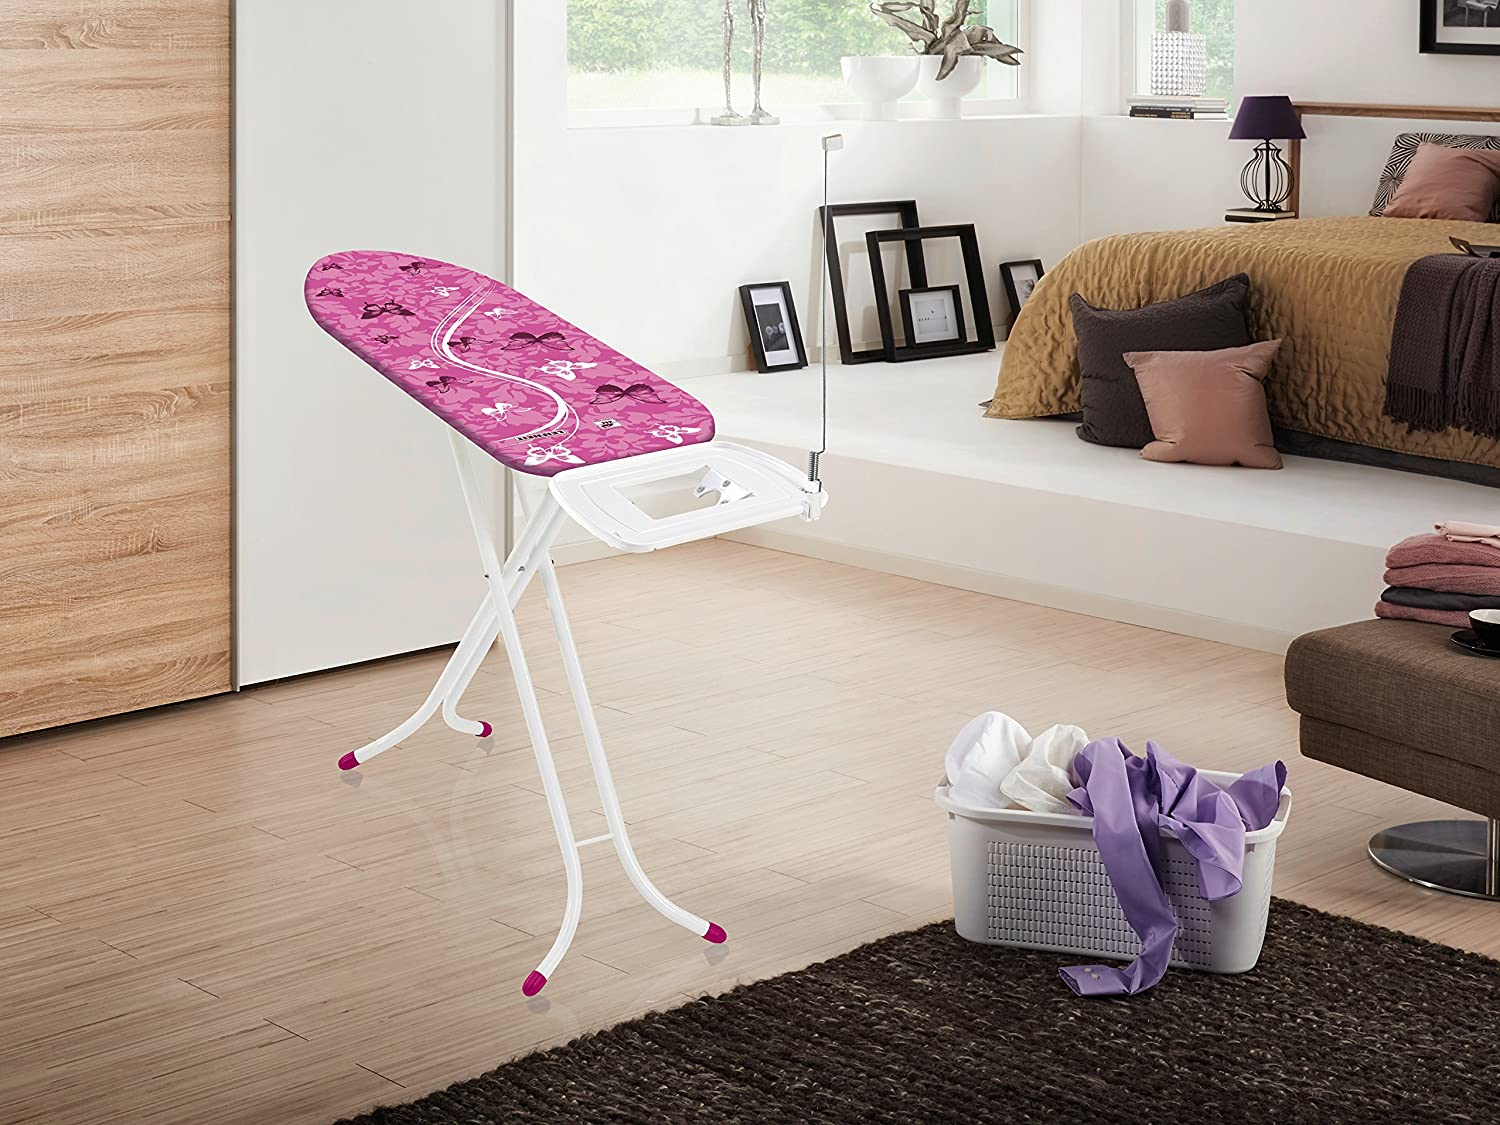 Leifheit Air Board Express M Compact Ironing Board for Steam Generator Irons, Limited Edition, 120 x 38 cm - Crazy Pink Pink